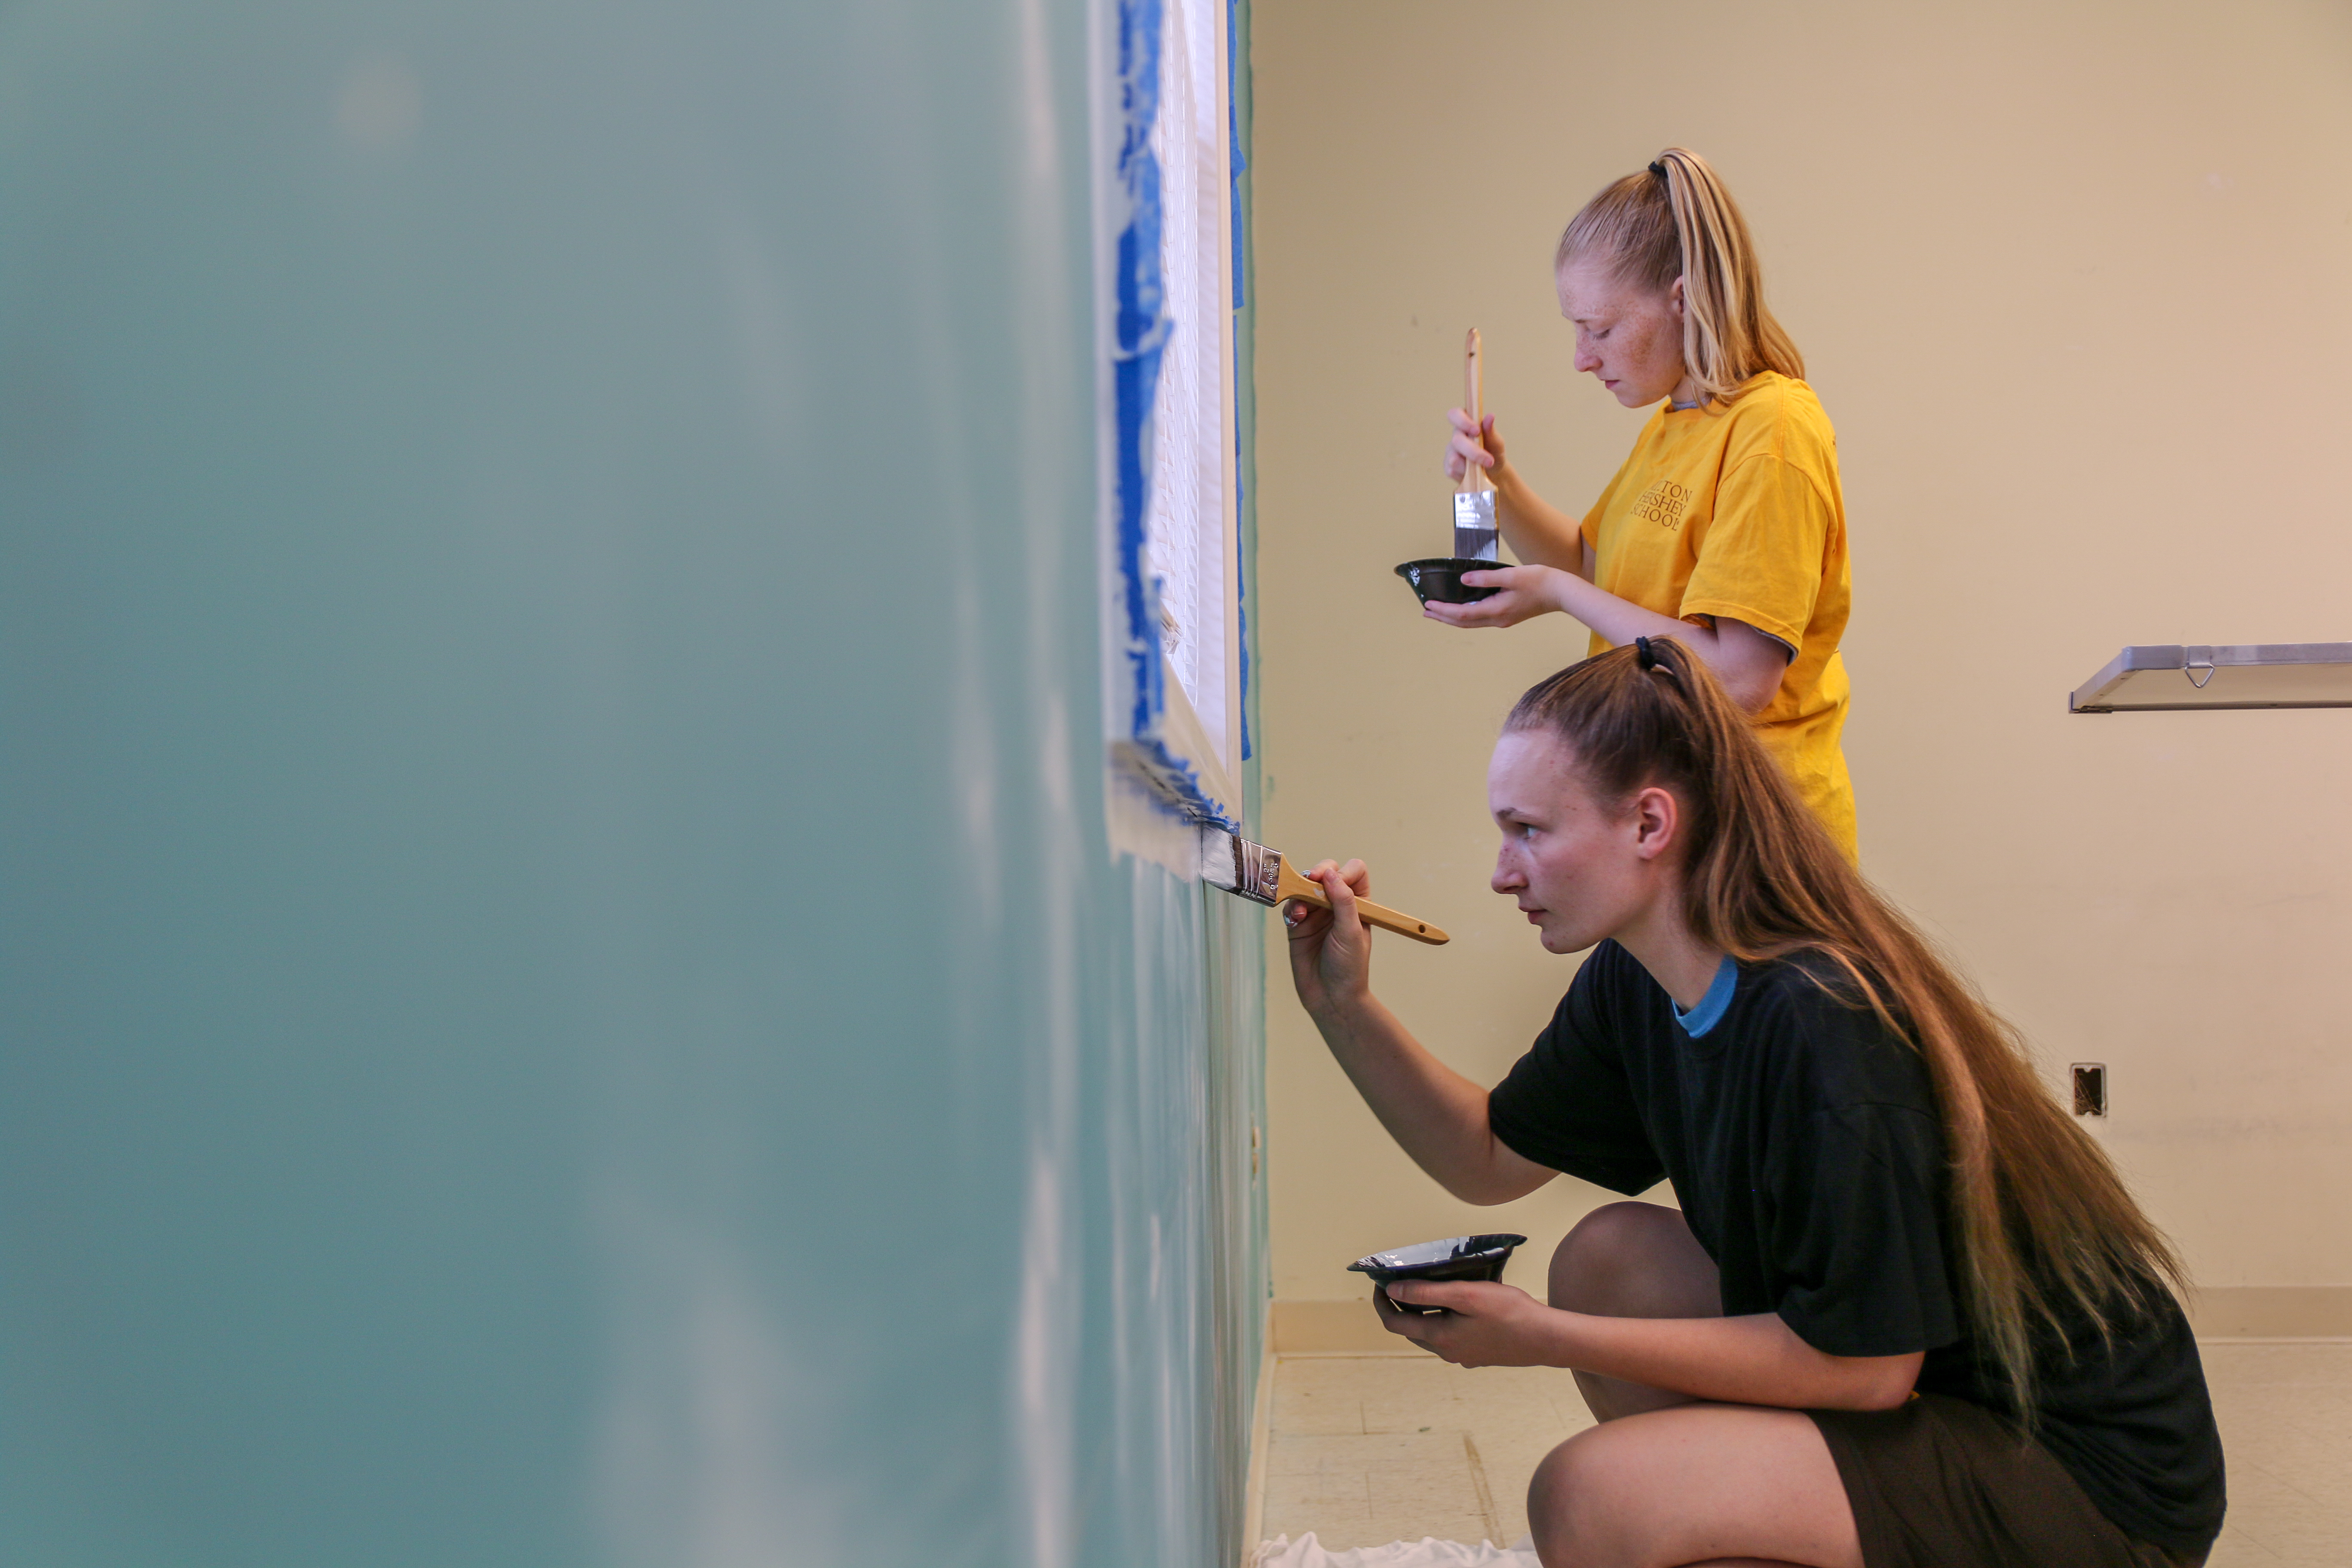 MHS students painting a wall in a community center